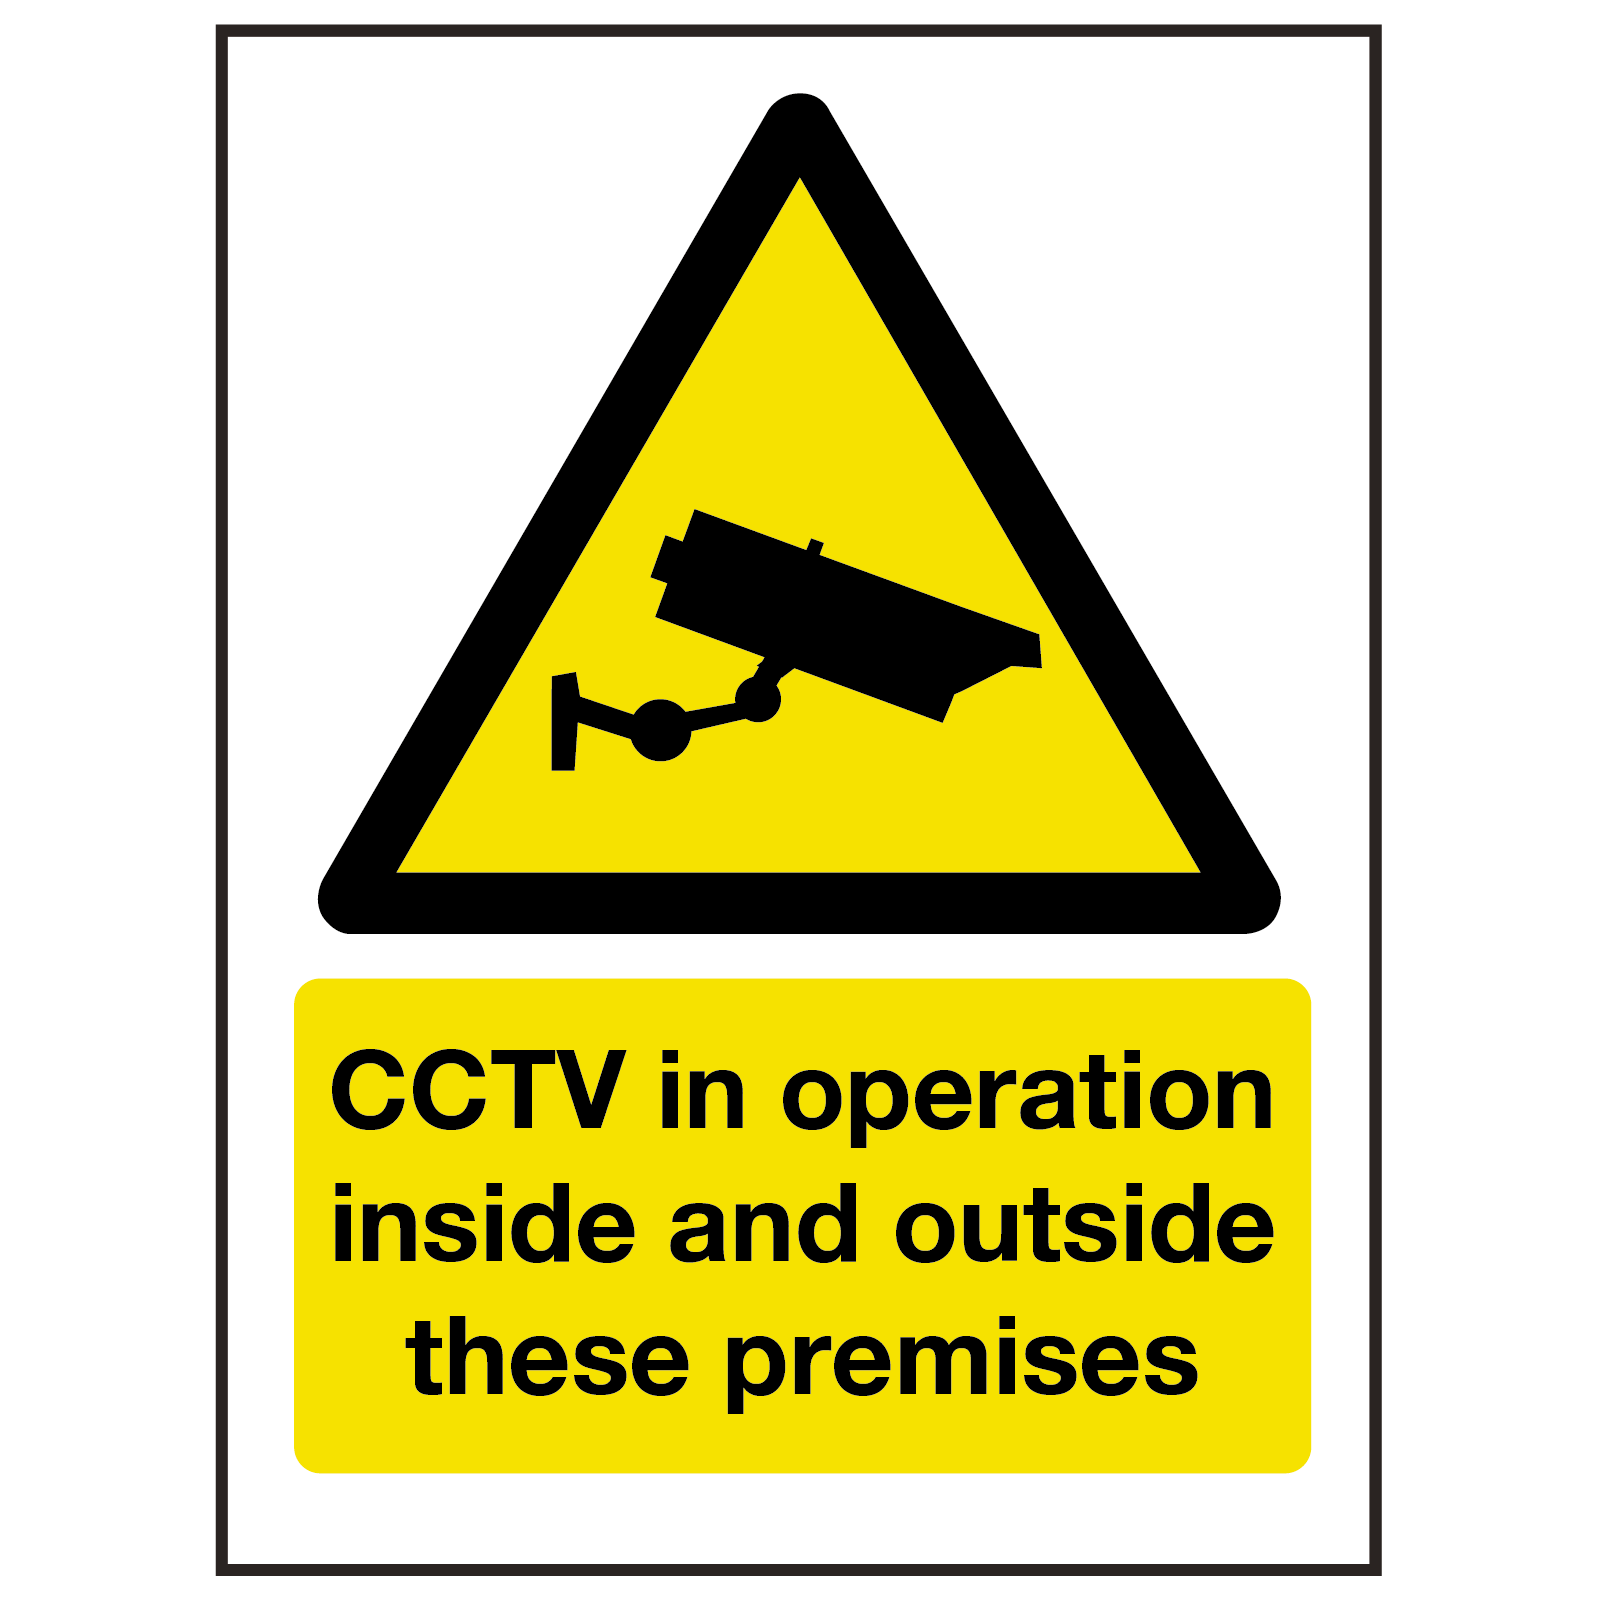 CCTV in Operation Inside and Outside Premises Sign